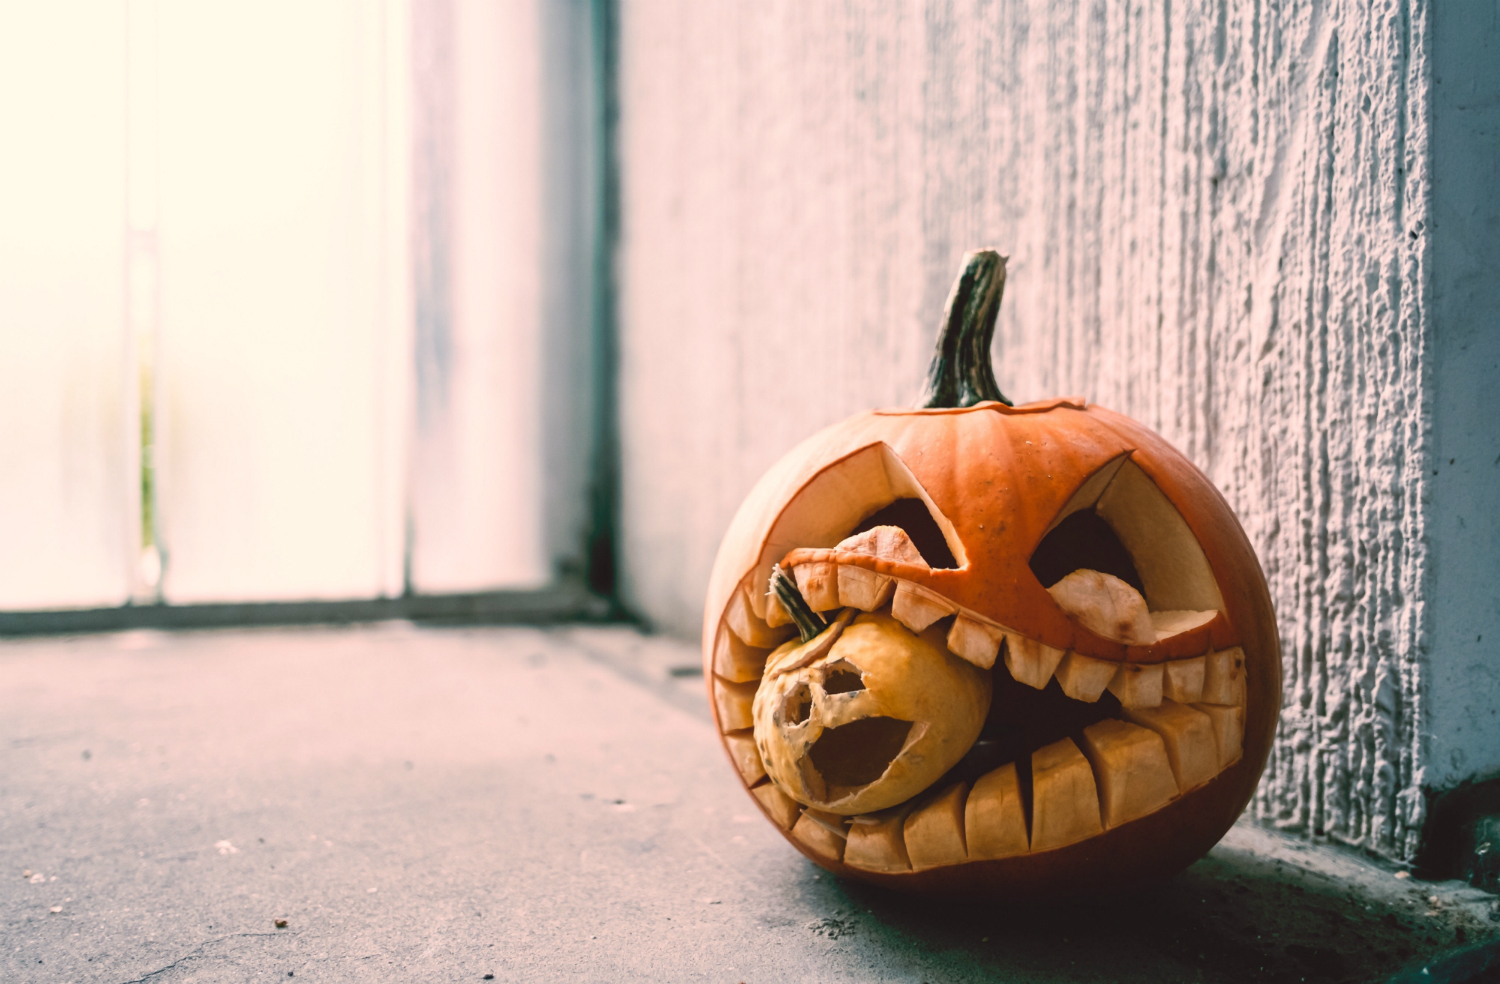 why are carved pumpkins called jackolanterns